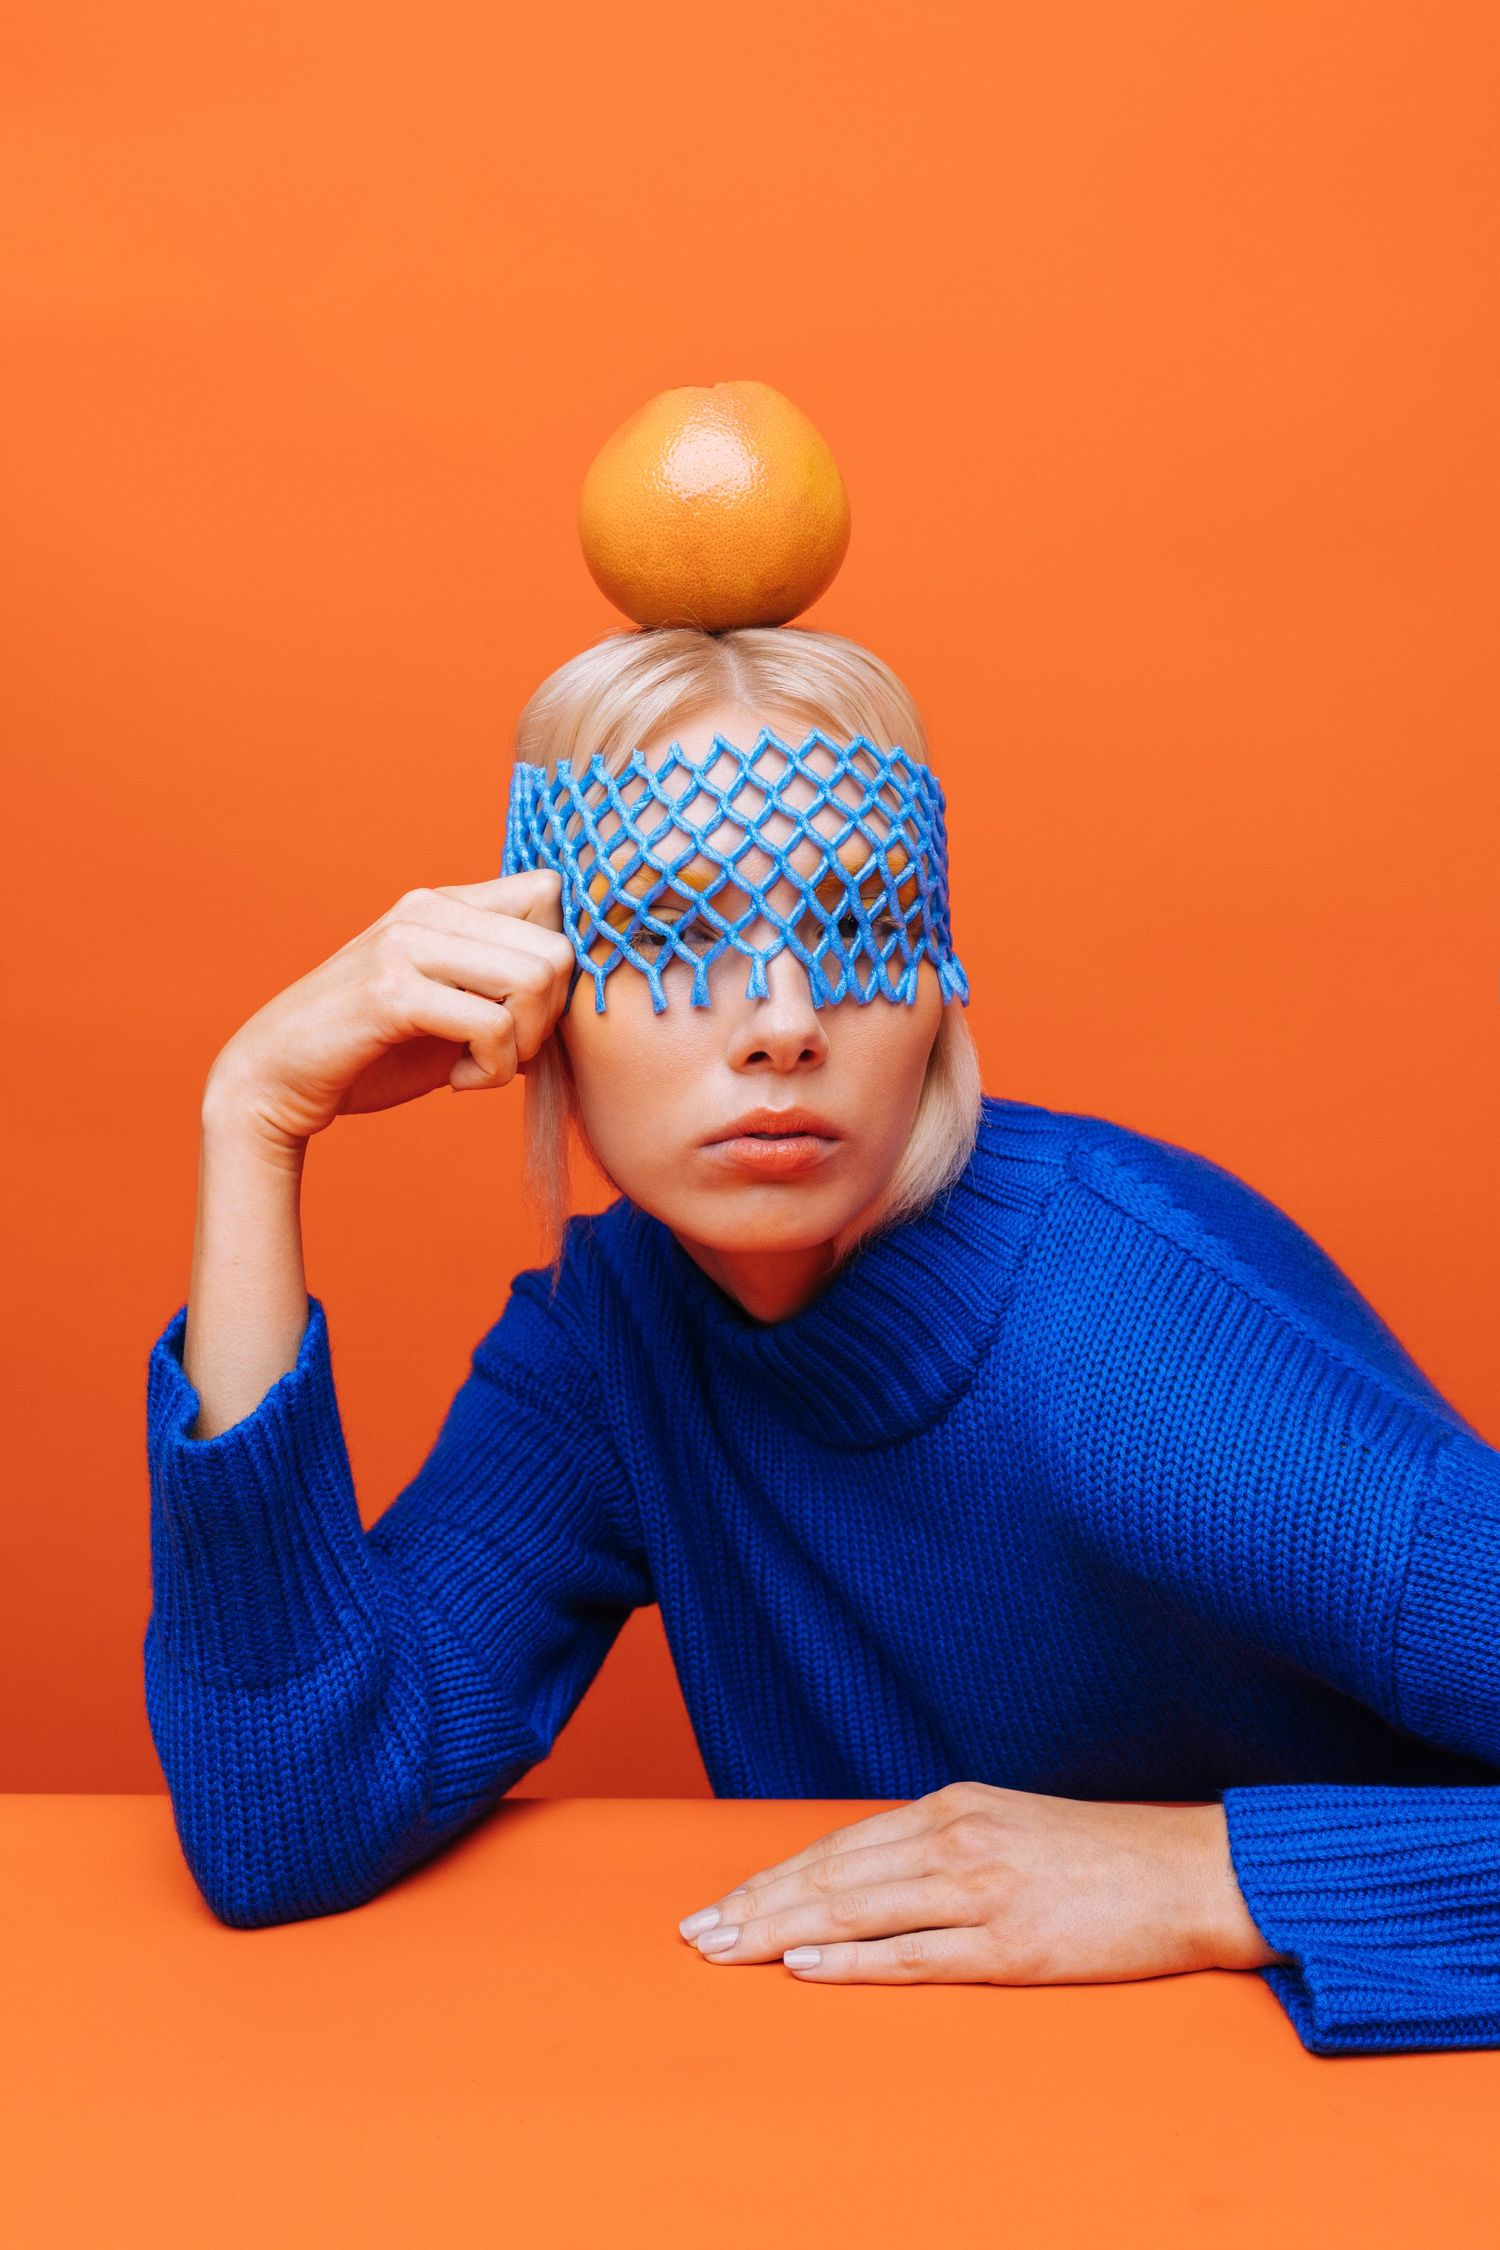 Juicy editorial for Fashion Journal magazine shot by Bill Chen